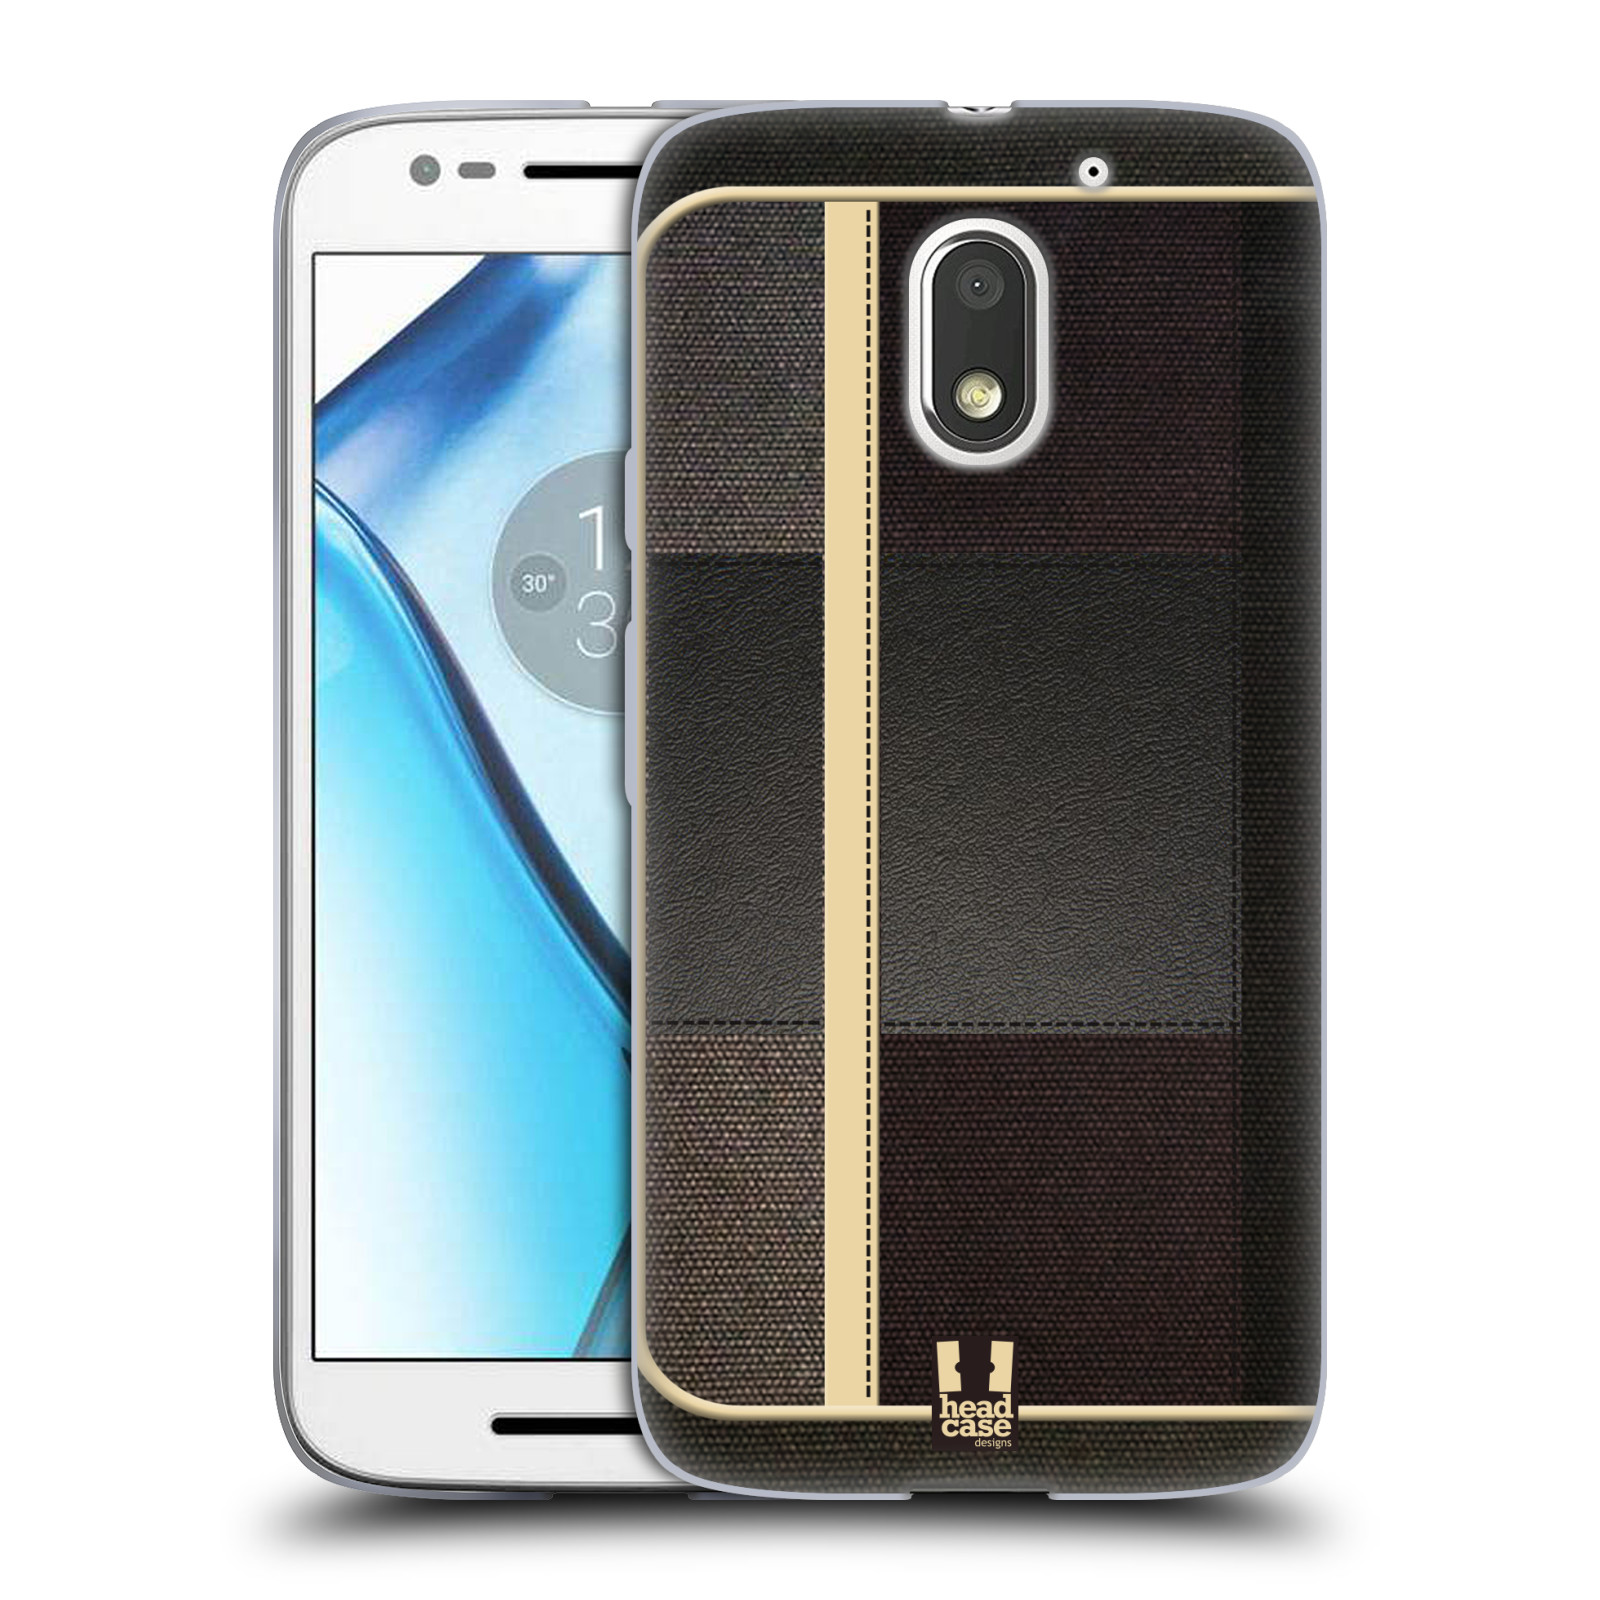 HEAD-CASE-DESIGNS-POUCH-SOFT-GEL-CASE-FOR-MOTOROLA-MOTO-E3